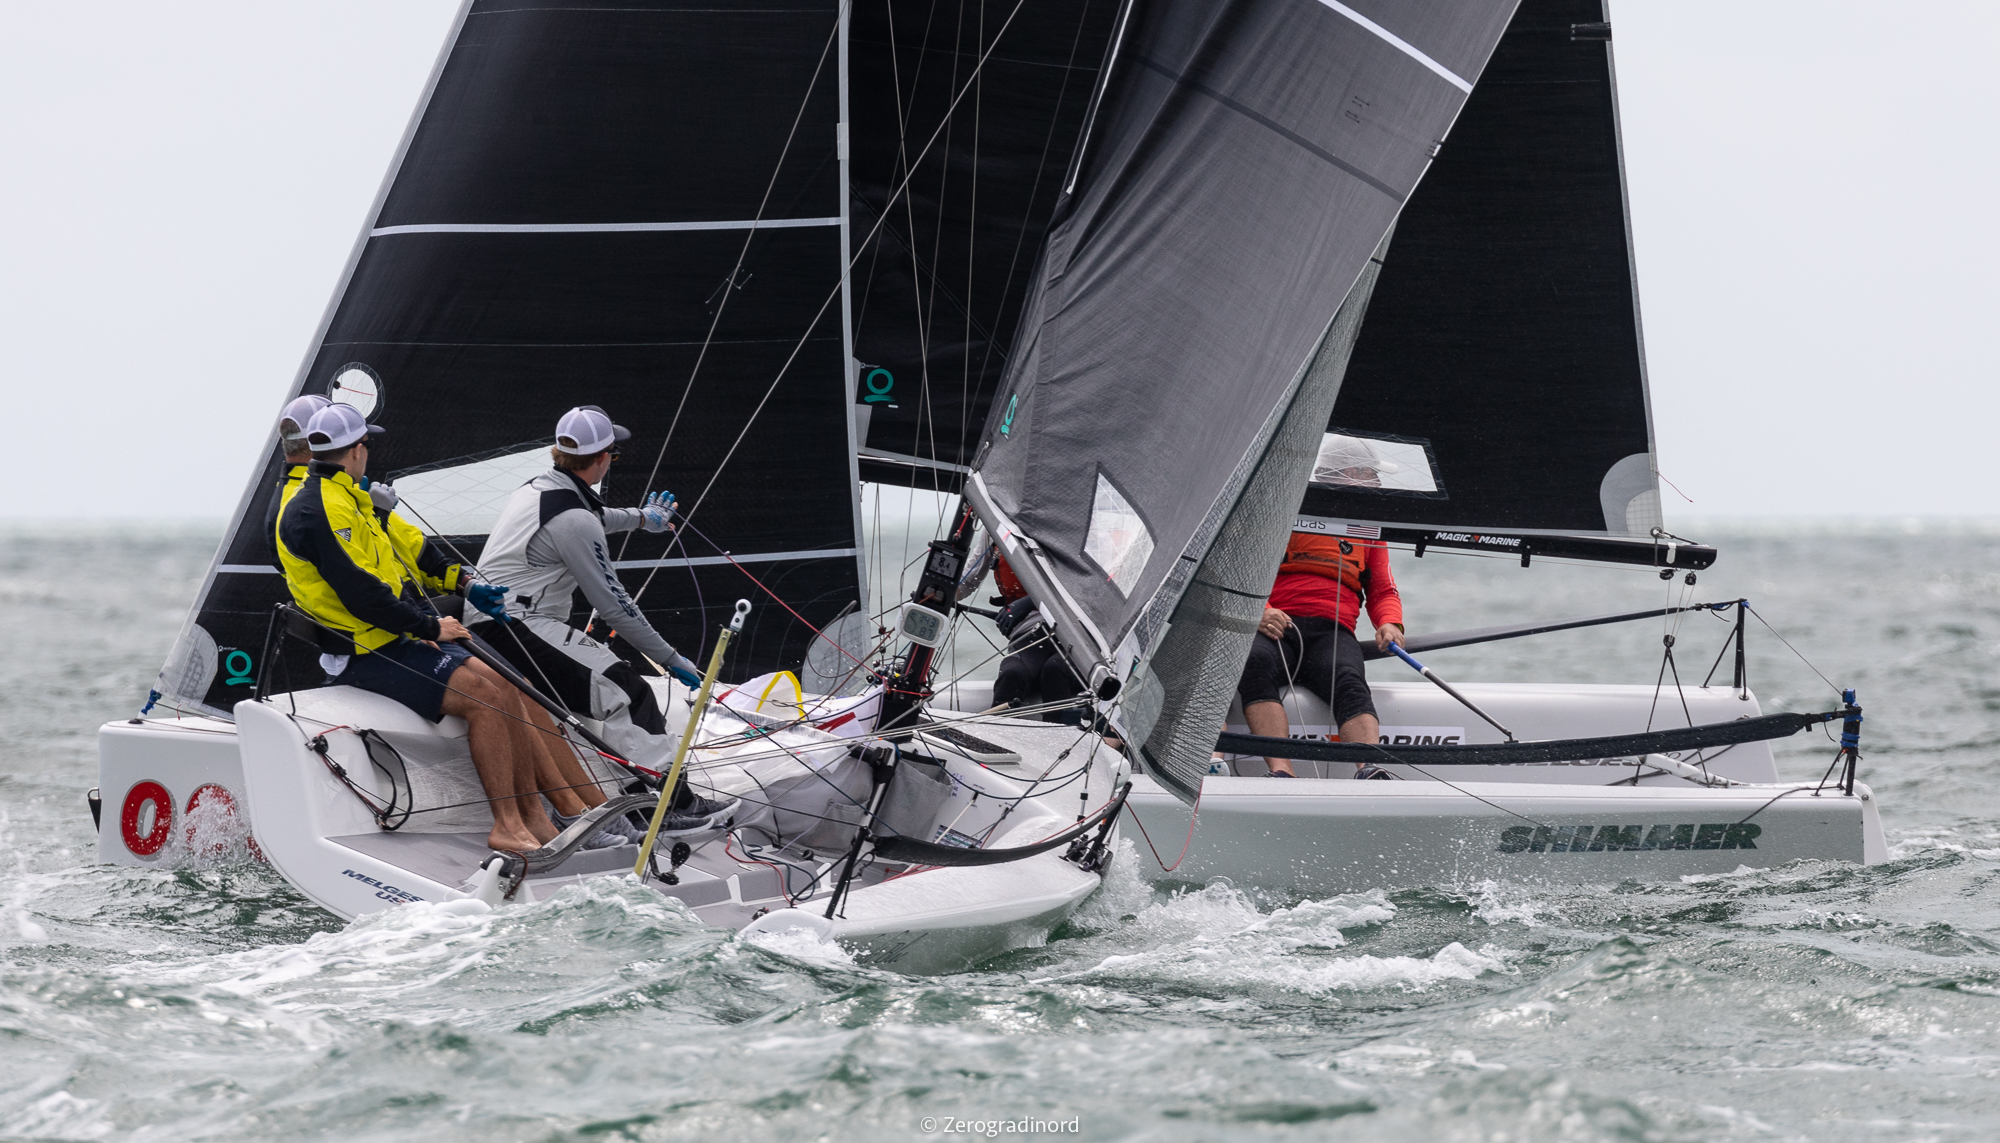 Melges20_030419_low-52.jpg